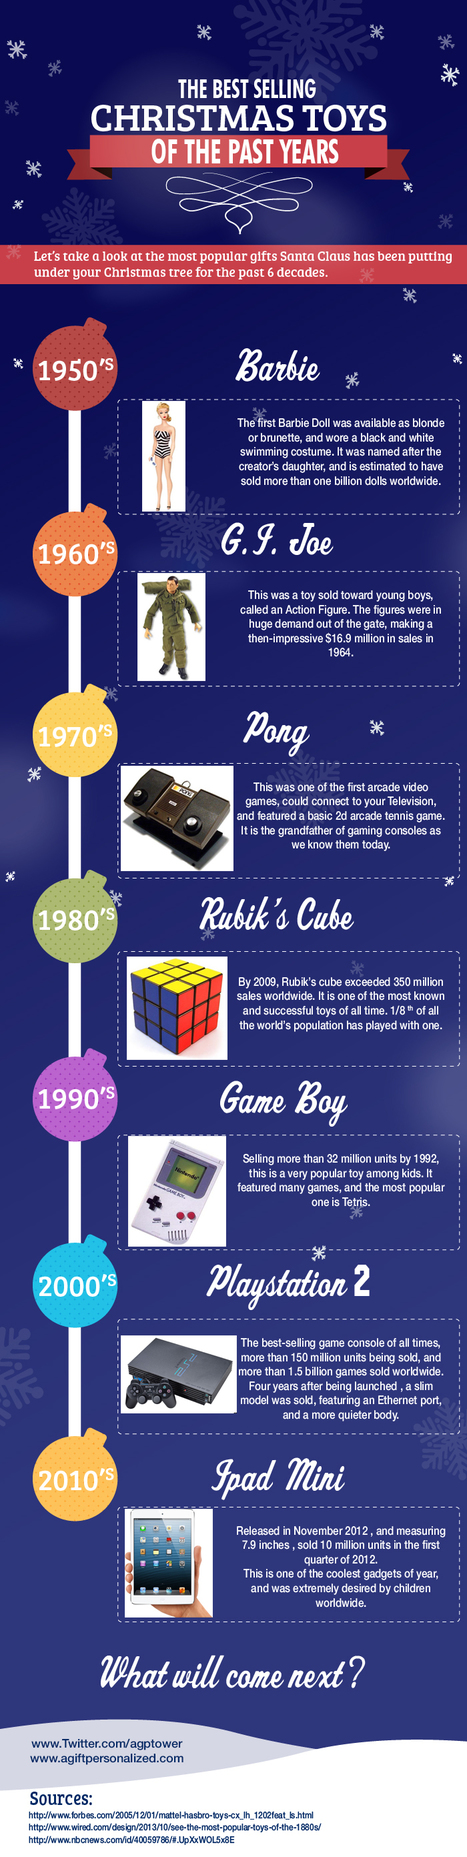 The Most Popular Christmas Toys Over the Past 6 Decades | Personalized Gifts | Scoop.it